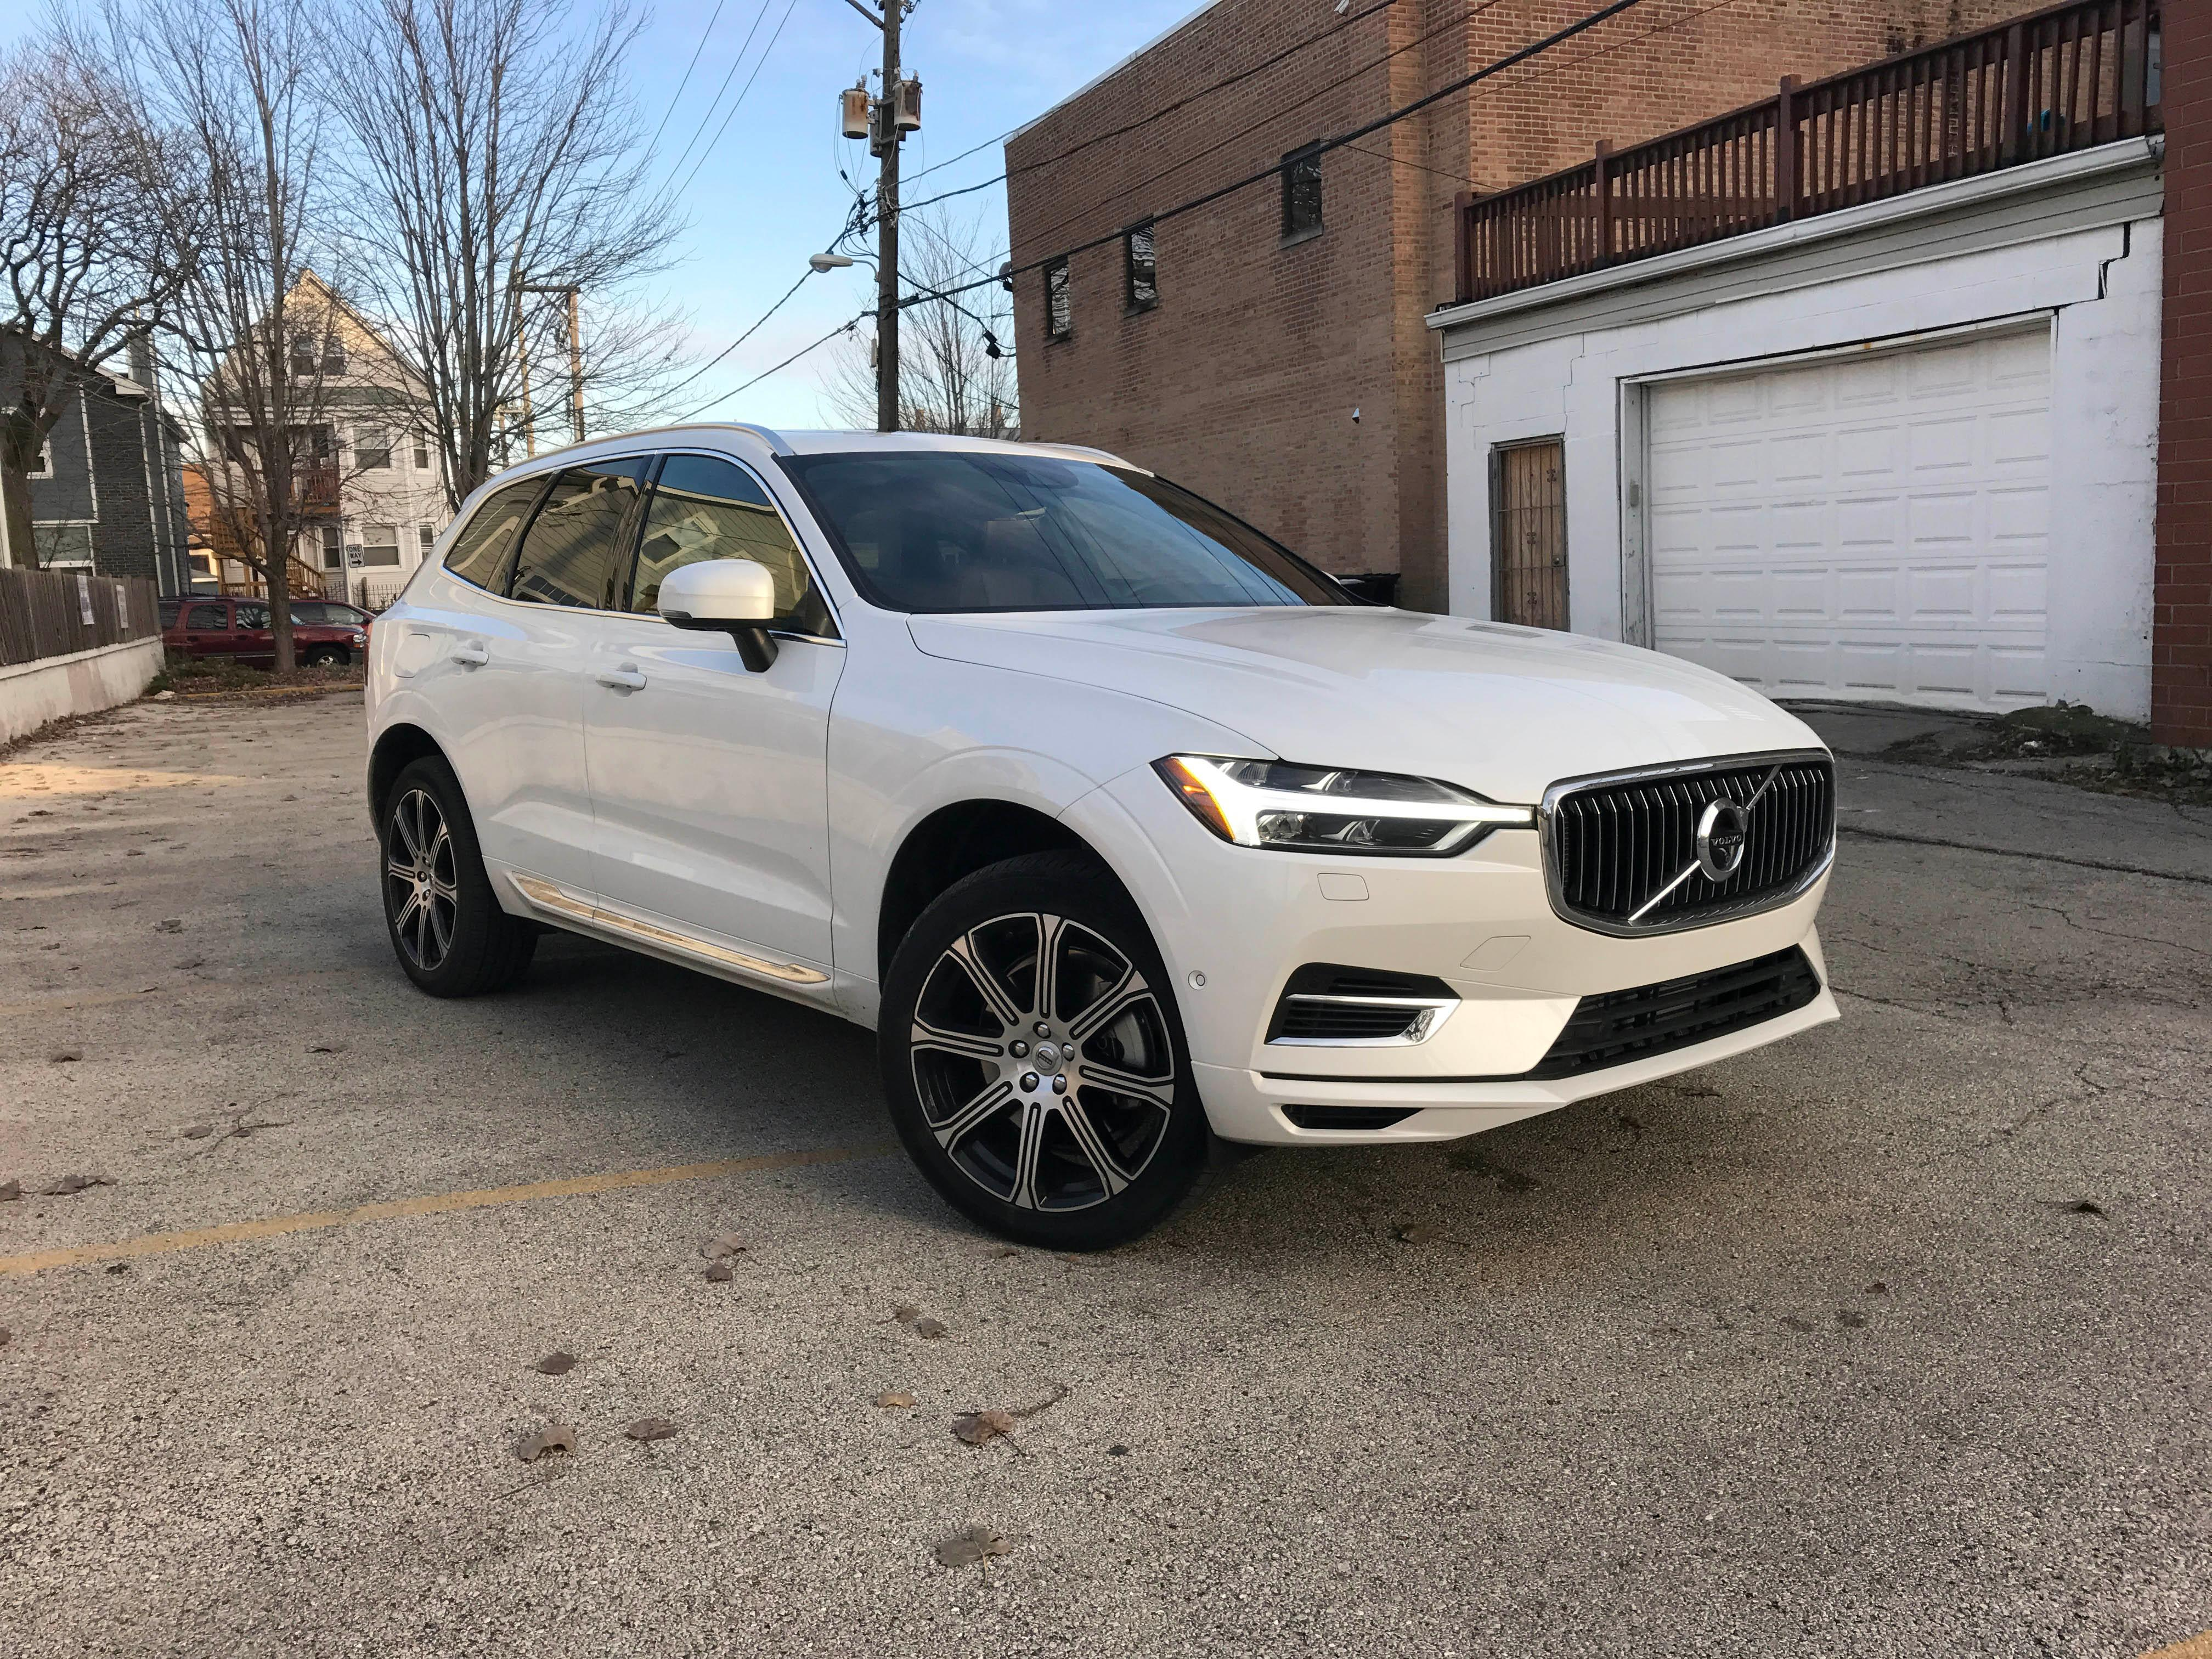 king a case suv the crossover enlarge volvo makes convincing of cars crossovers